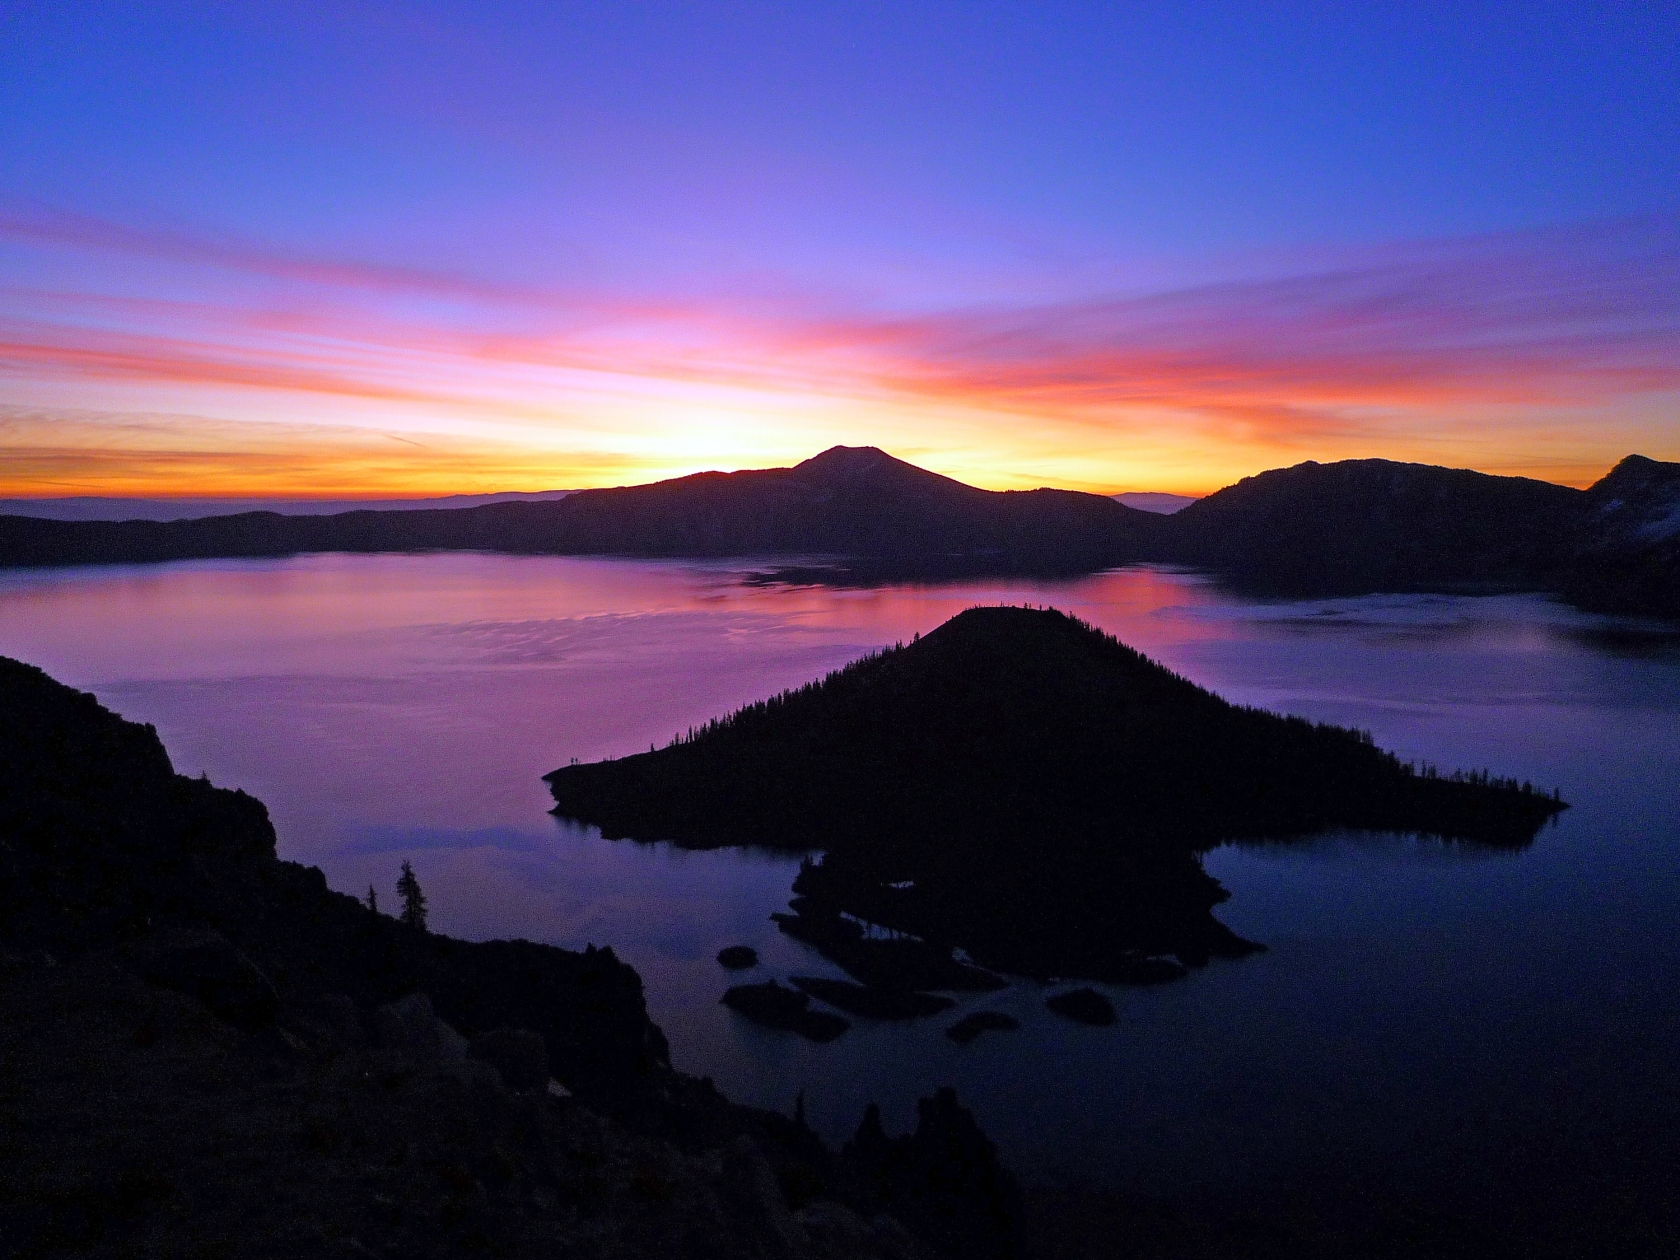 Rainbow-colored sunrise over Crater Lake National Park